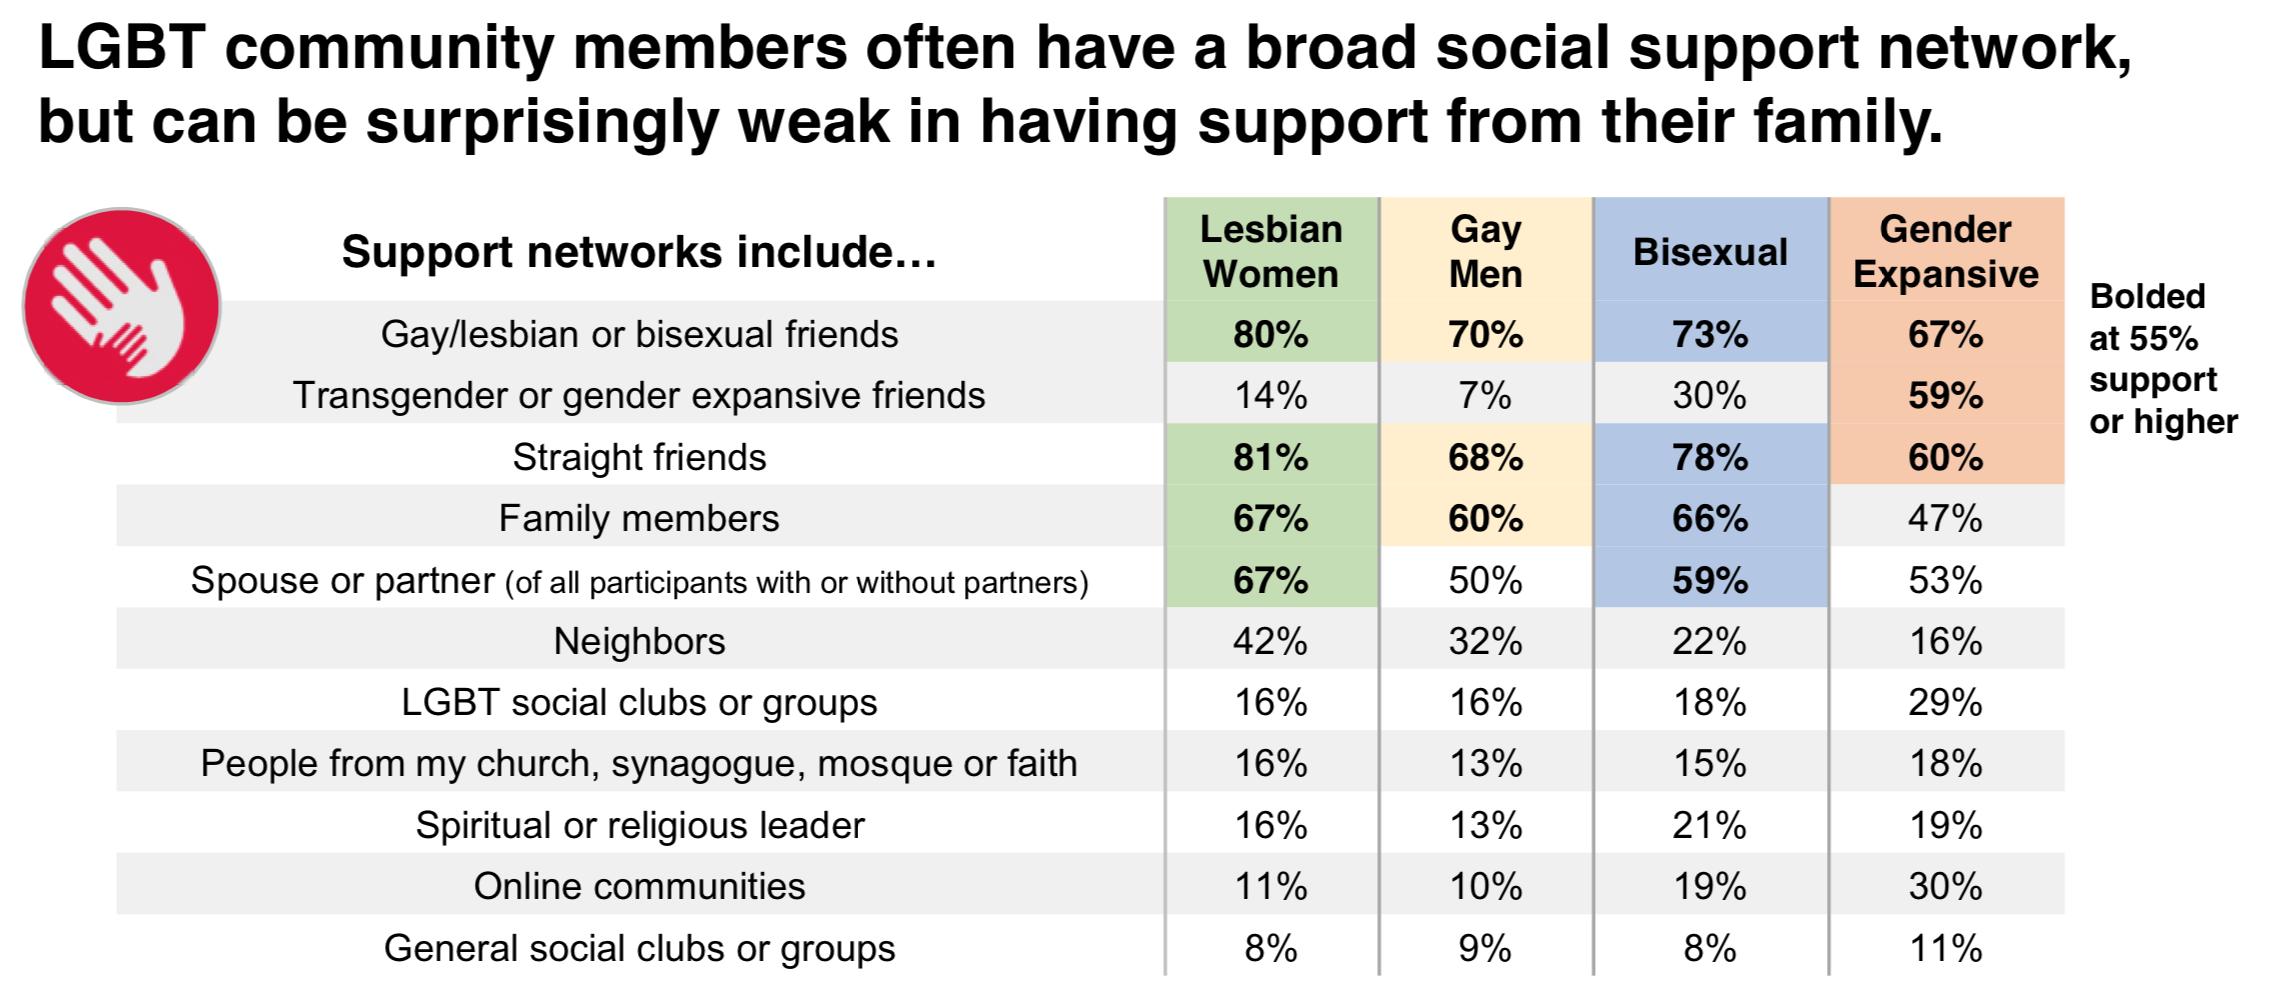 The vast majority of LGBT participants (92%) feel that they have some social support network. Of interest is the high level of both LGBT and straight friends that make up that network. While family is important, the percentages are unfortunately low compared to the friends network, especially for the gender expansive community. Also noteworthy is the relatively limited support by religious communities. Of interest is the higher level of support from online communities for gender expansive community members, the social support connection between the bisexual and gender expansive communities, and the higher connection with neighbors by lesbians.